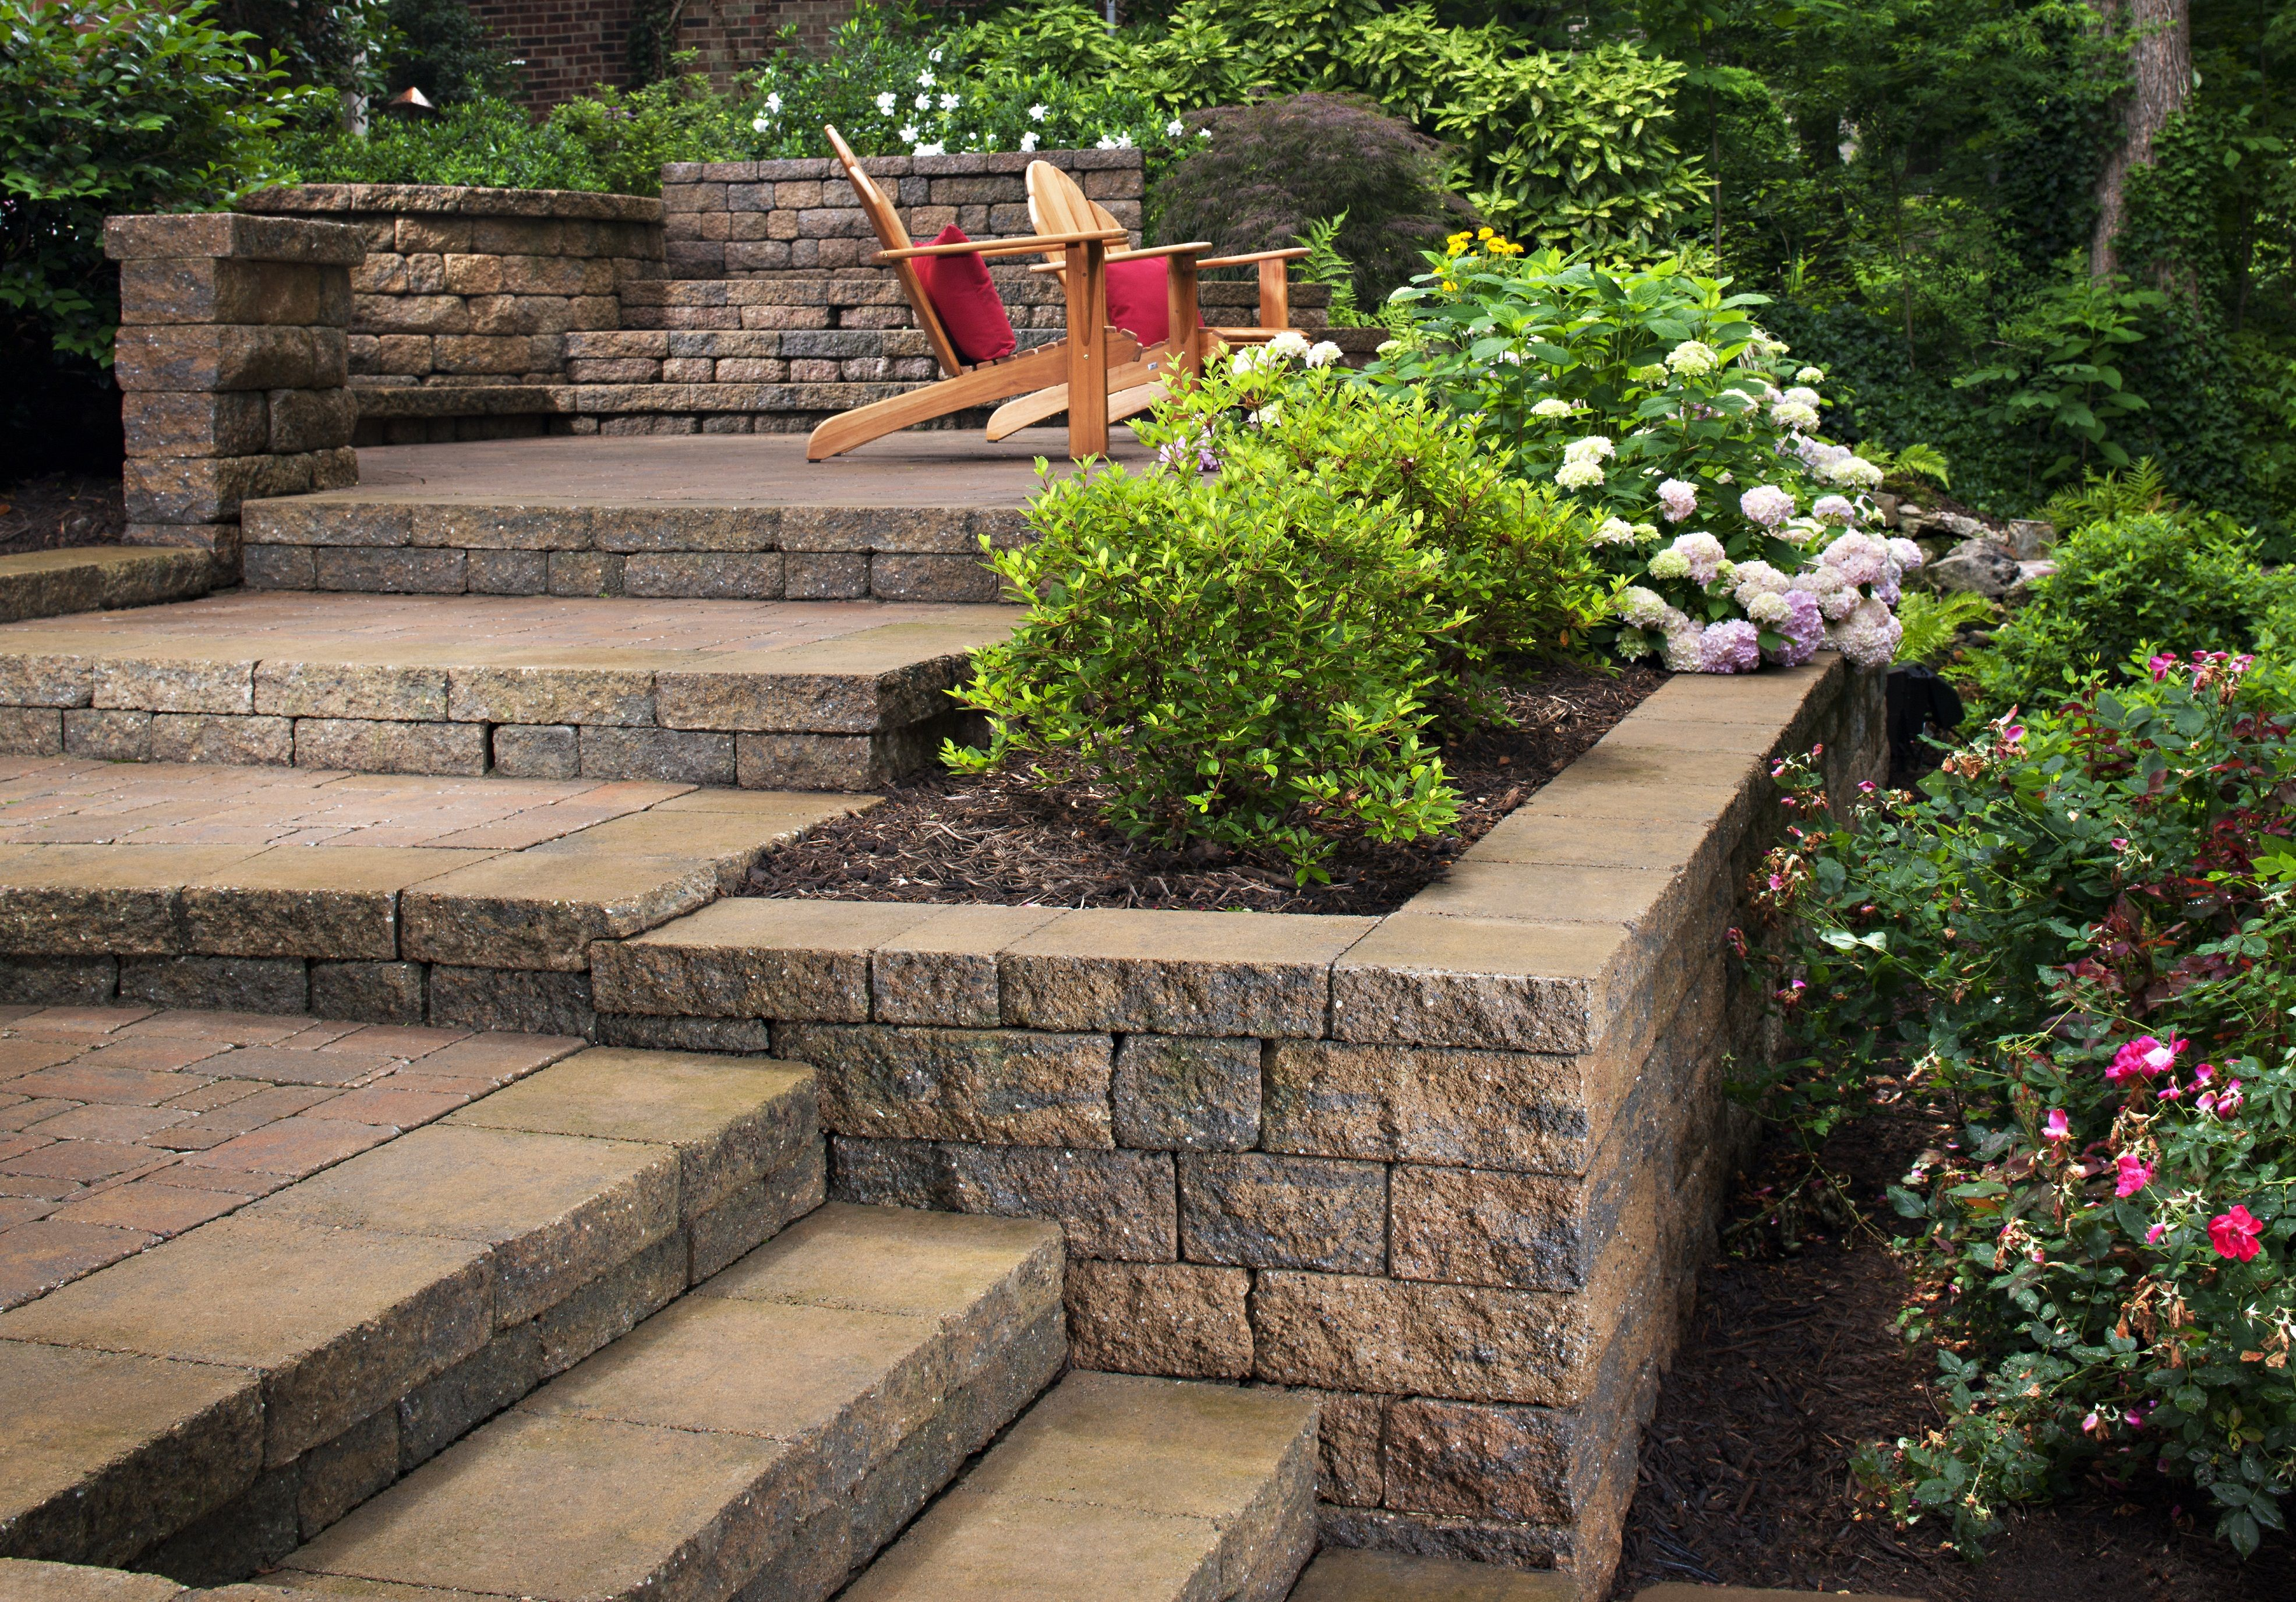 landscaping ideas for a steep backyard slope